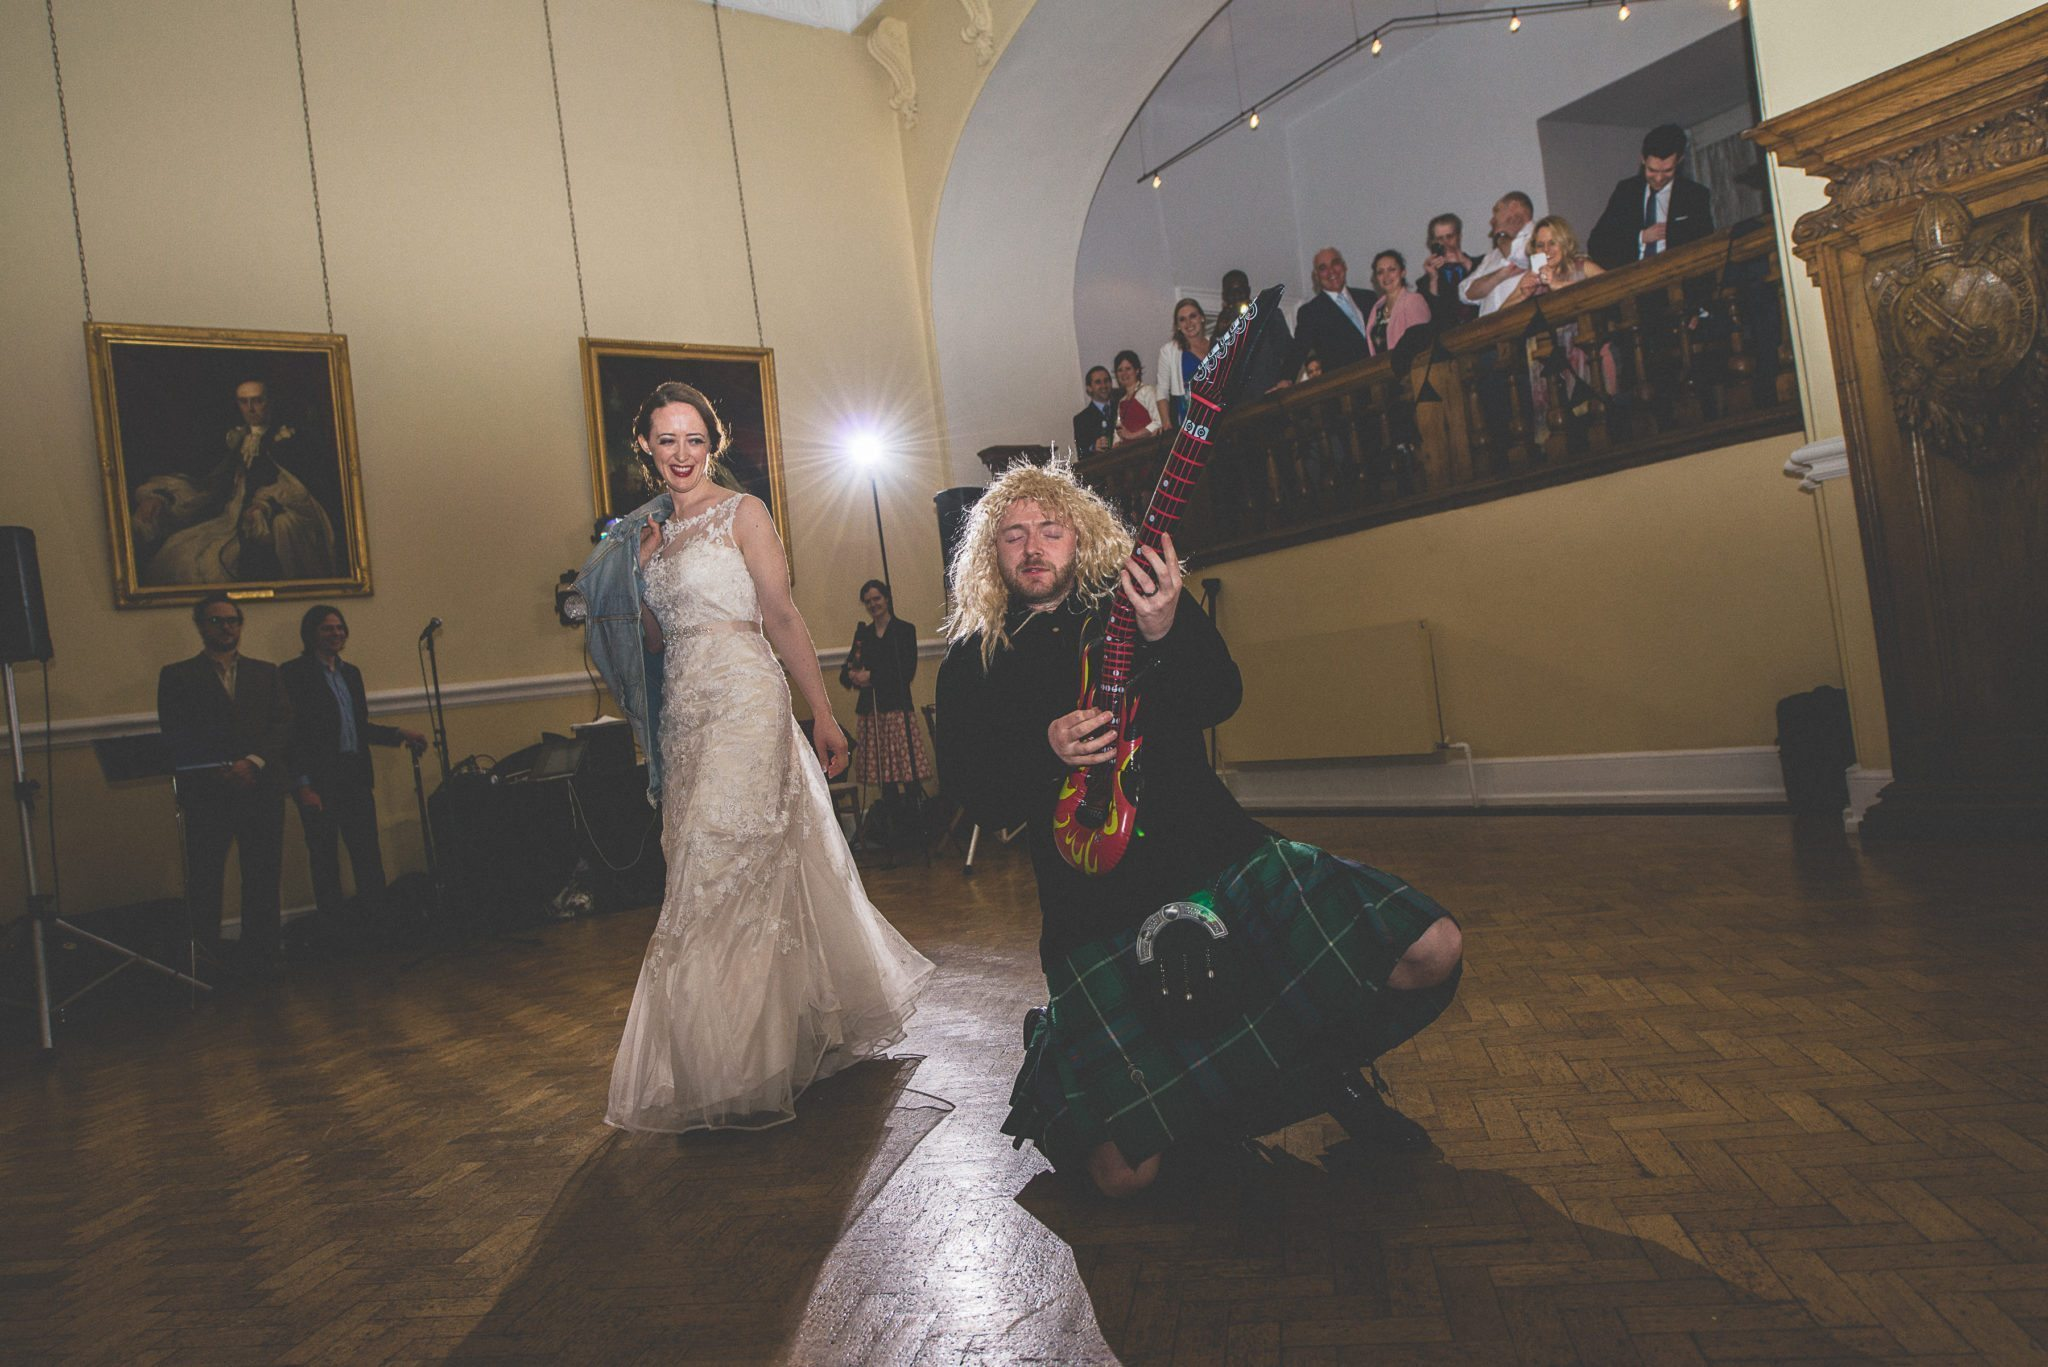 Scottish Groom in a long blond wig plays an inflatable guitar while his bride laughs